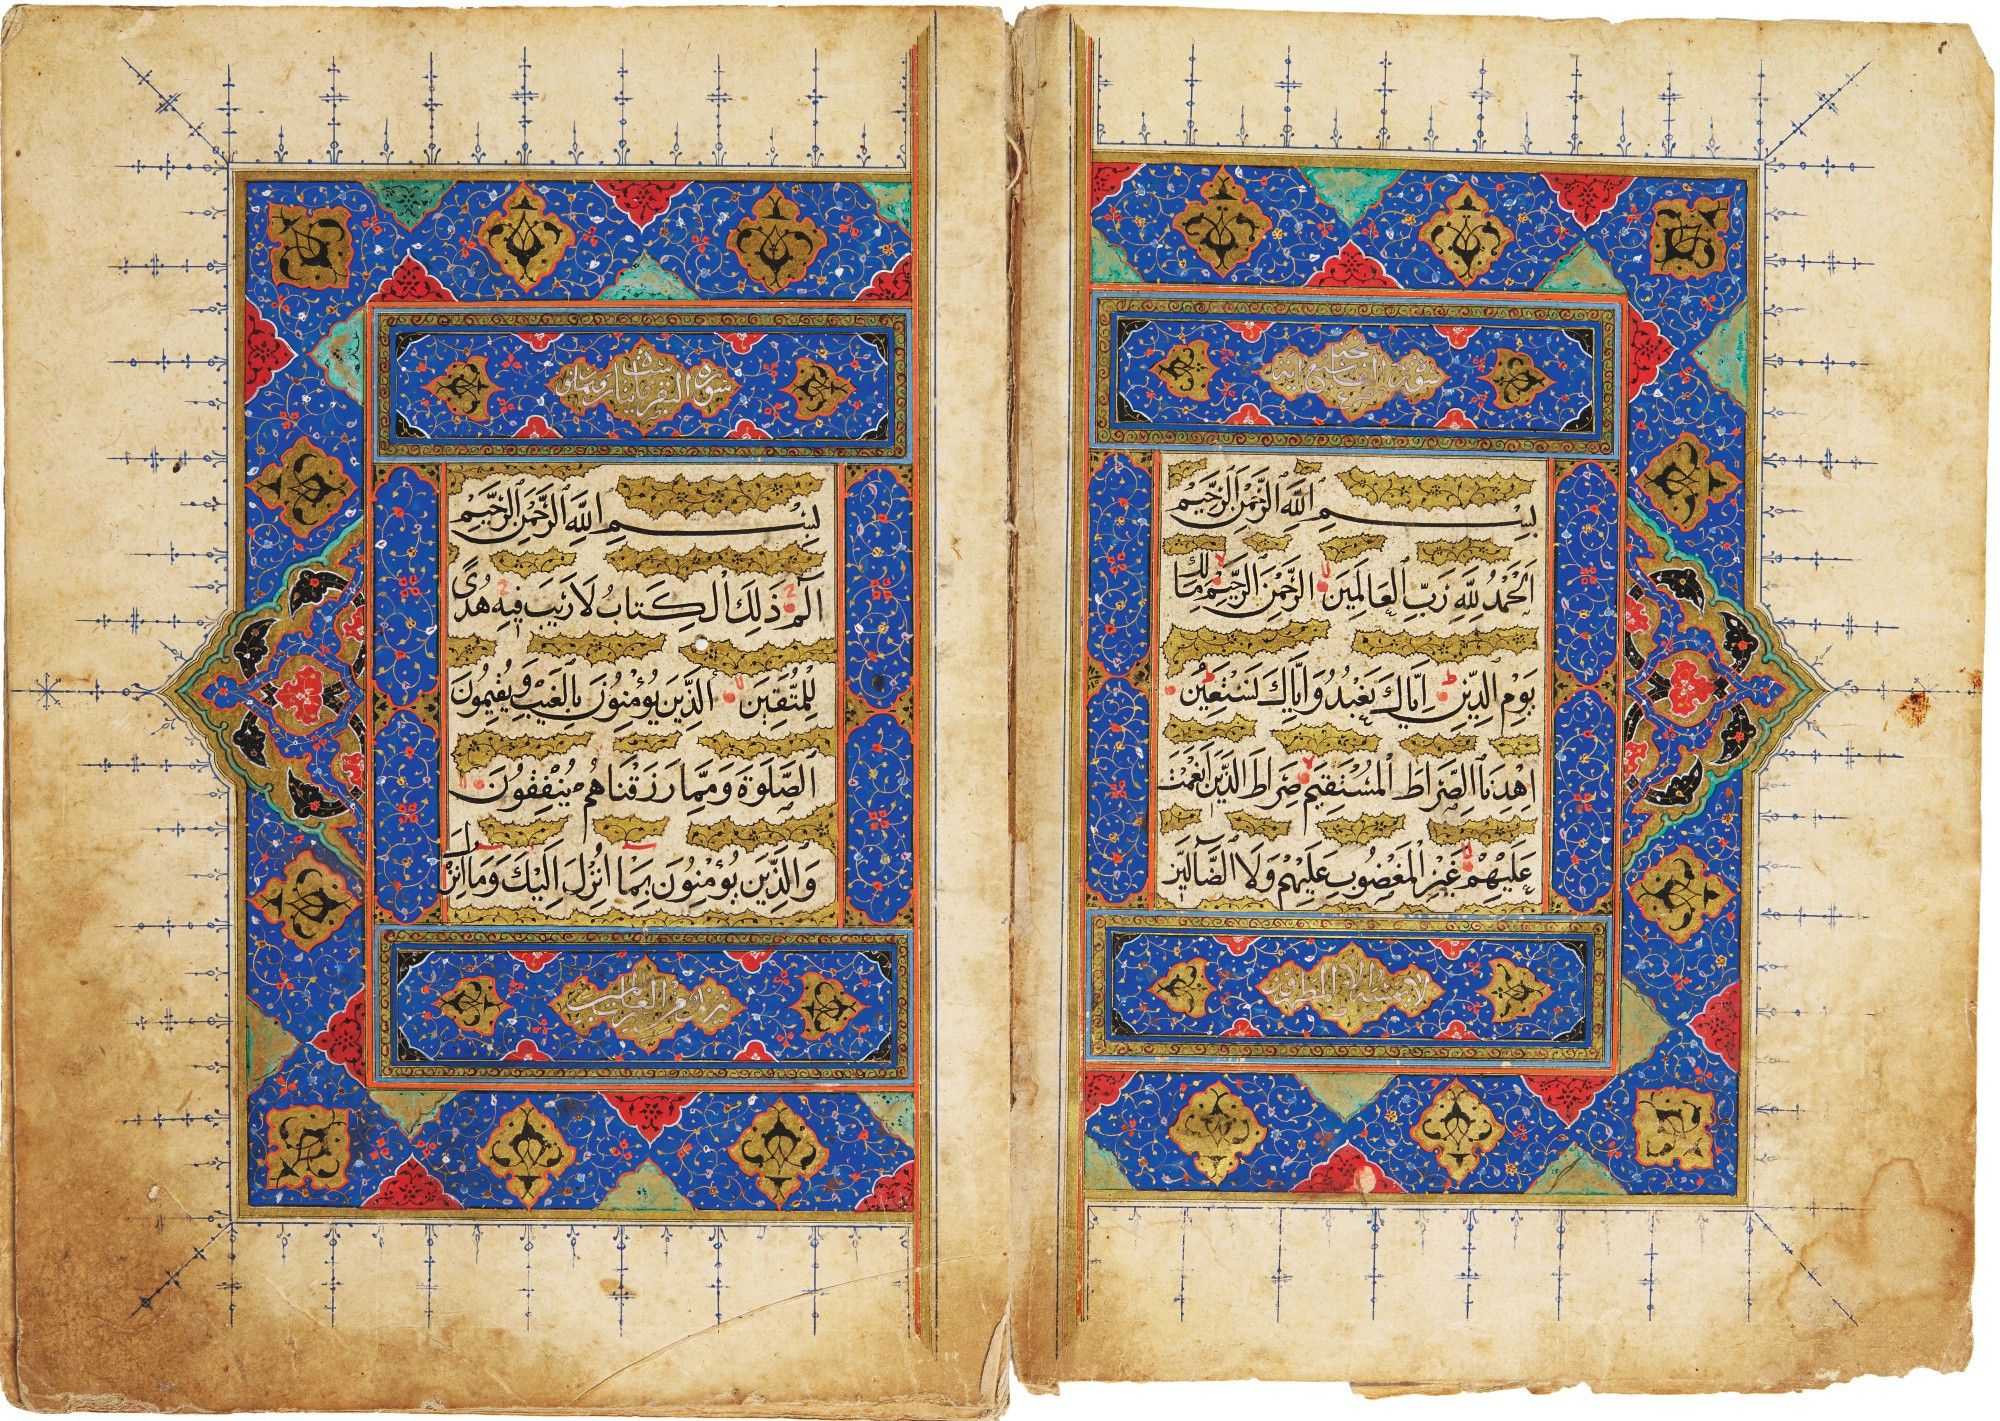 AN ILLUMINATED QUR'AN JUZ (I), PERSIA OR TURKEY, SAFAVID OR OTTOMAN...